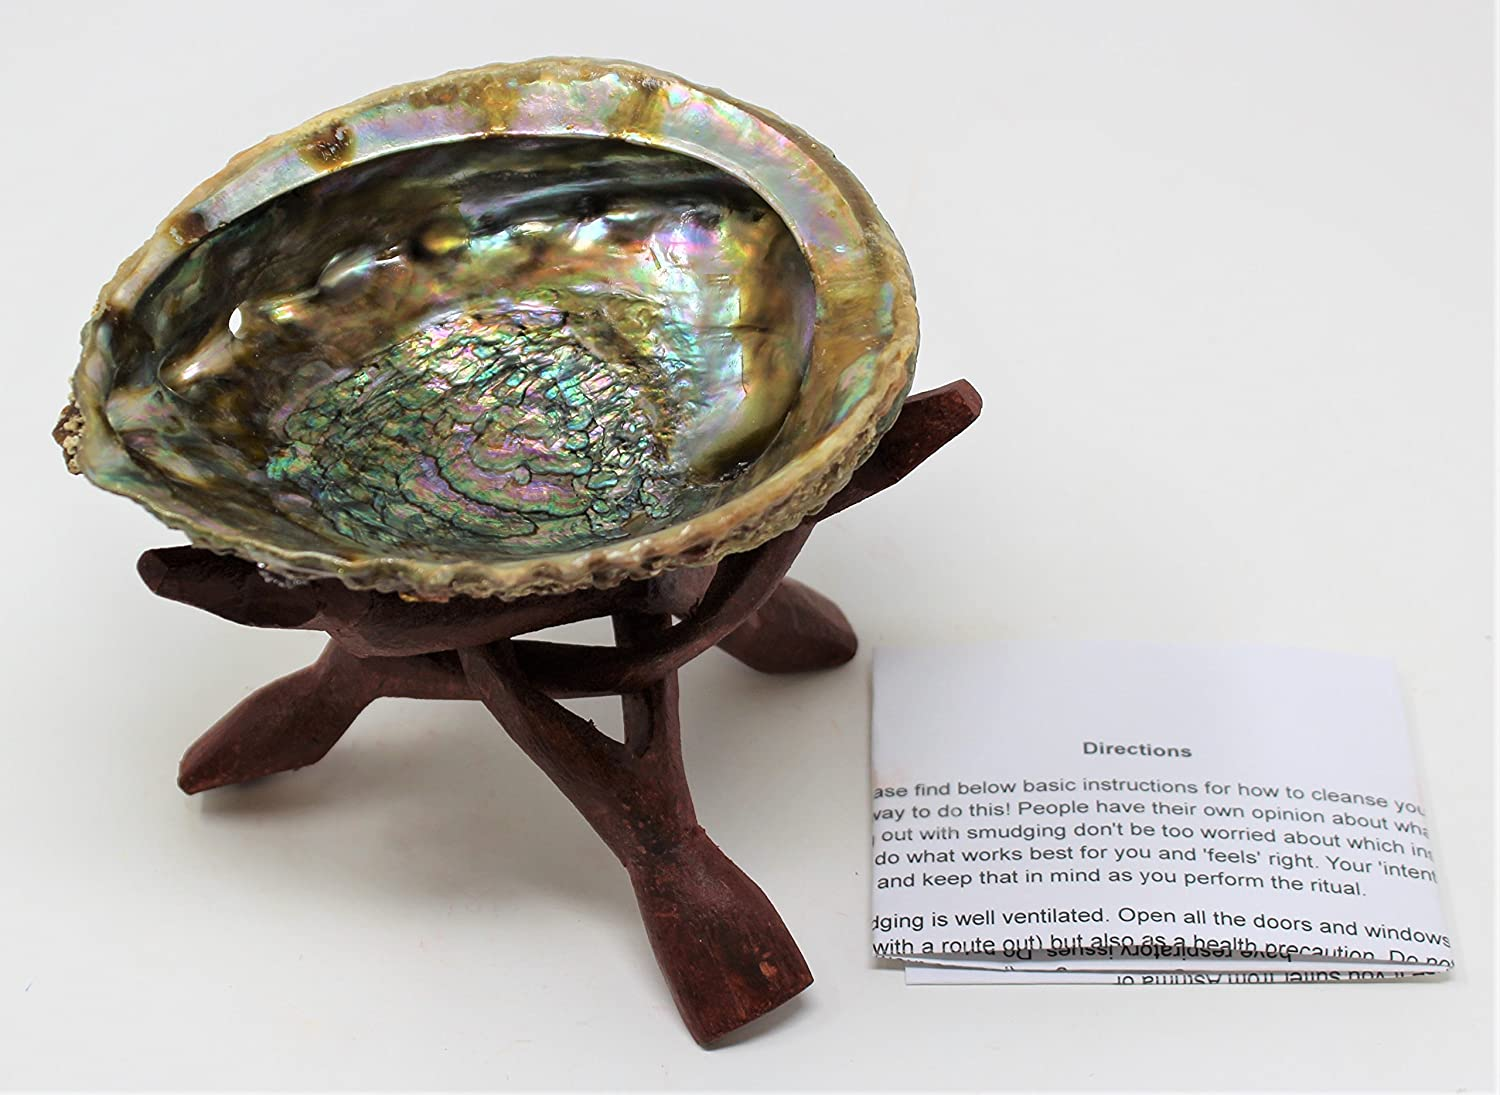 Rainbow Records Abalone Smudge Kit Large Shell 6 Stand and Directions